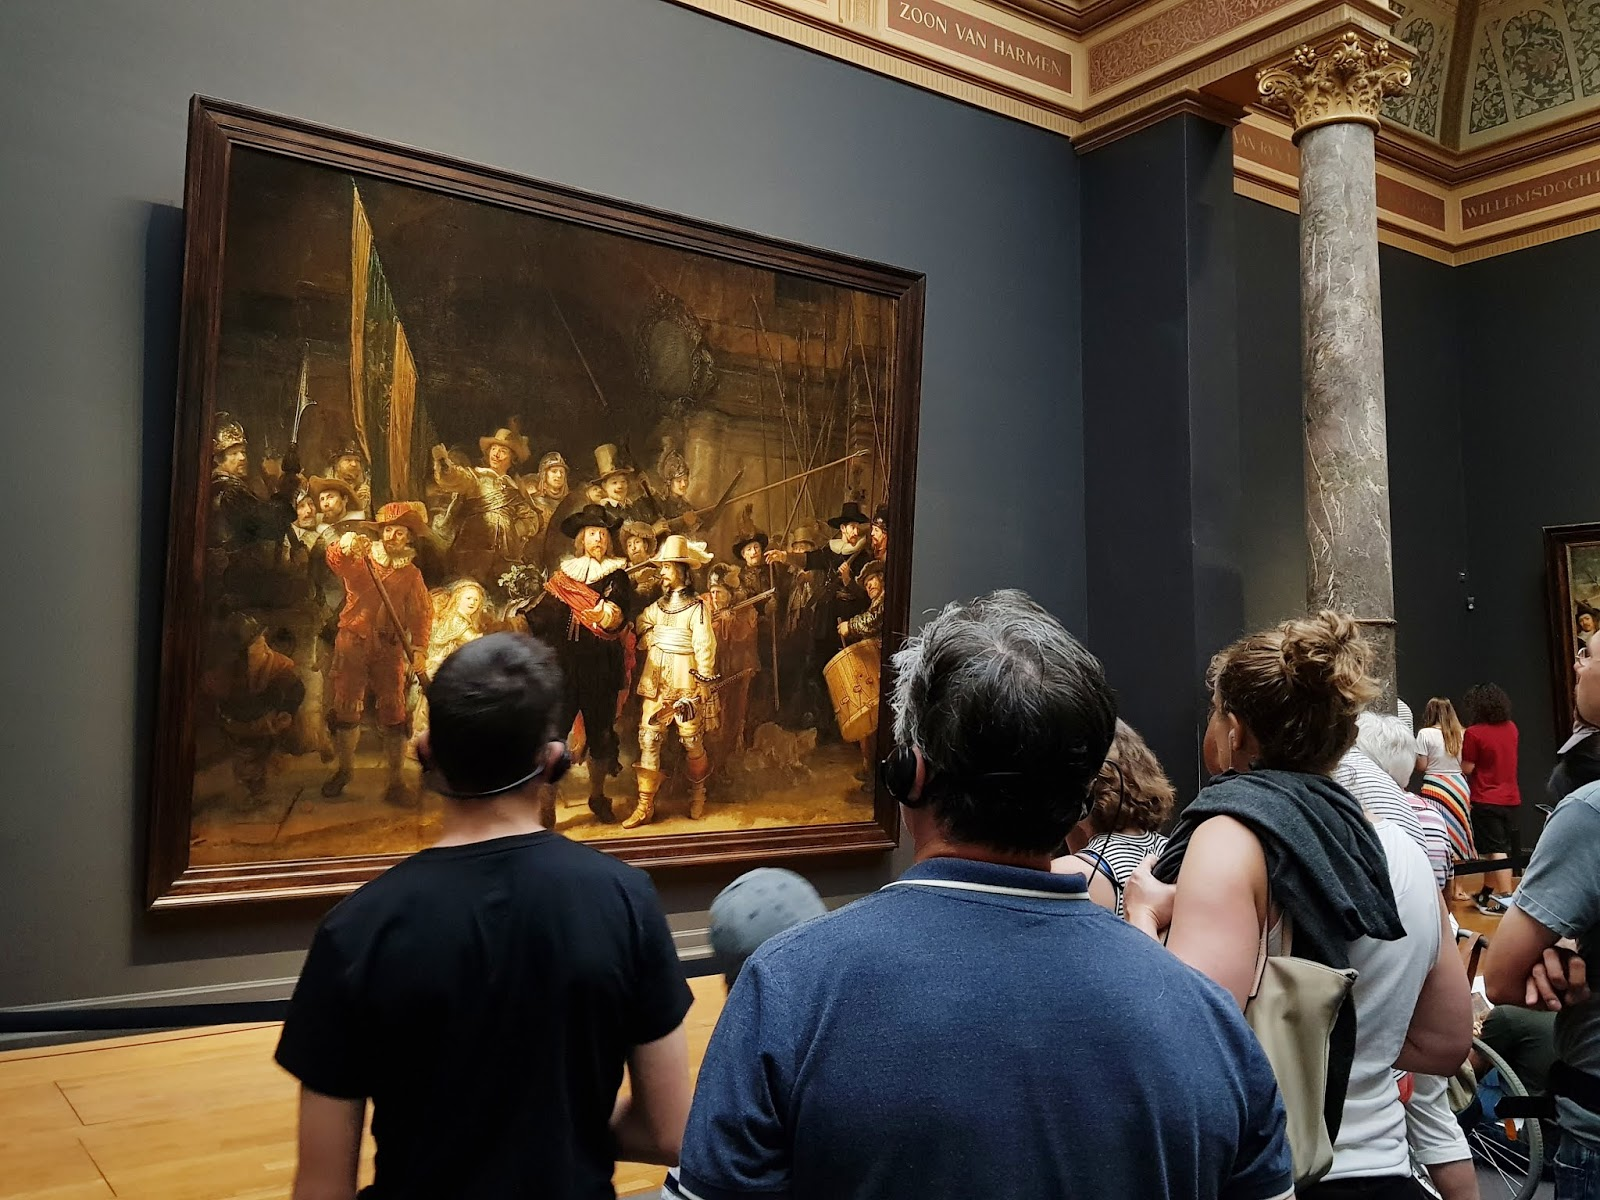 exploring amsterdam attractions sightseeing rijksmuseum Rembrandt night watch museum